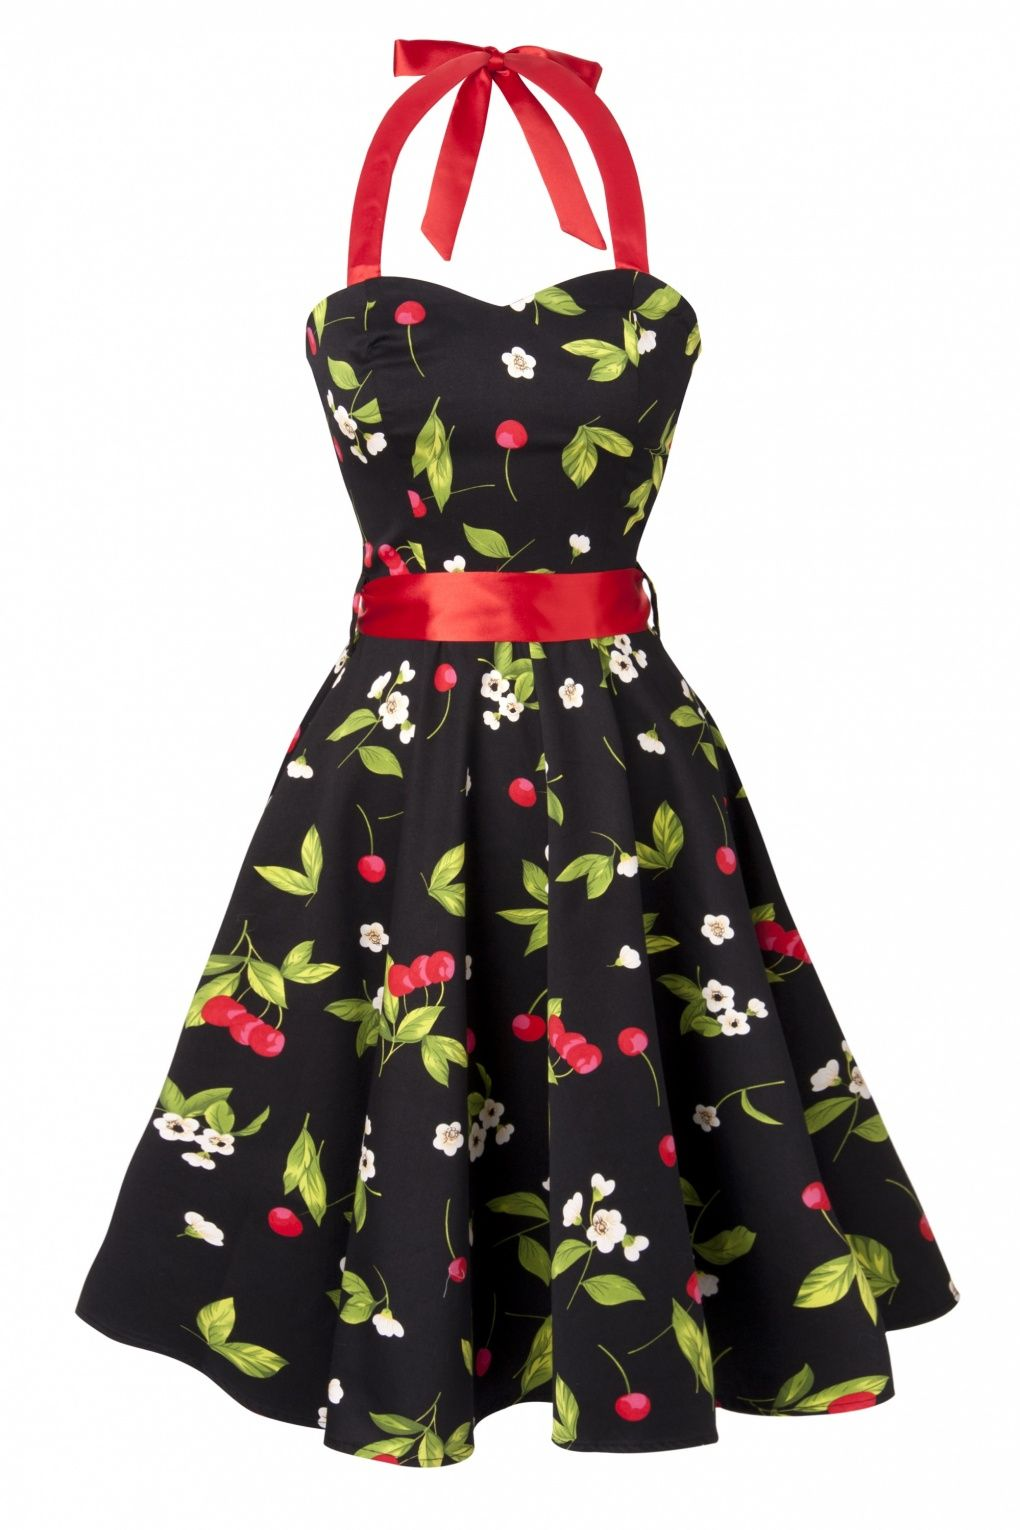 Hearts   Roses - 50s Black Cherry Blossom swing halter dress 18c683d0ef13